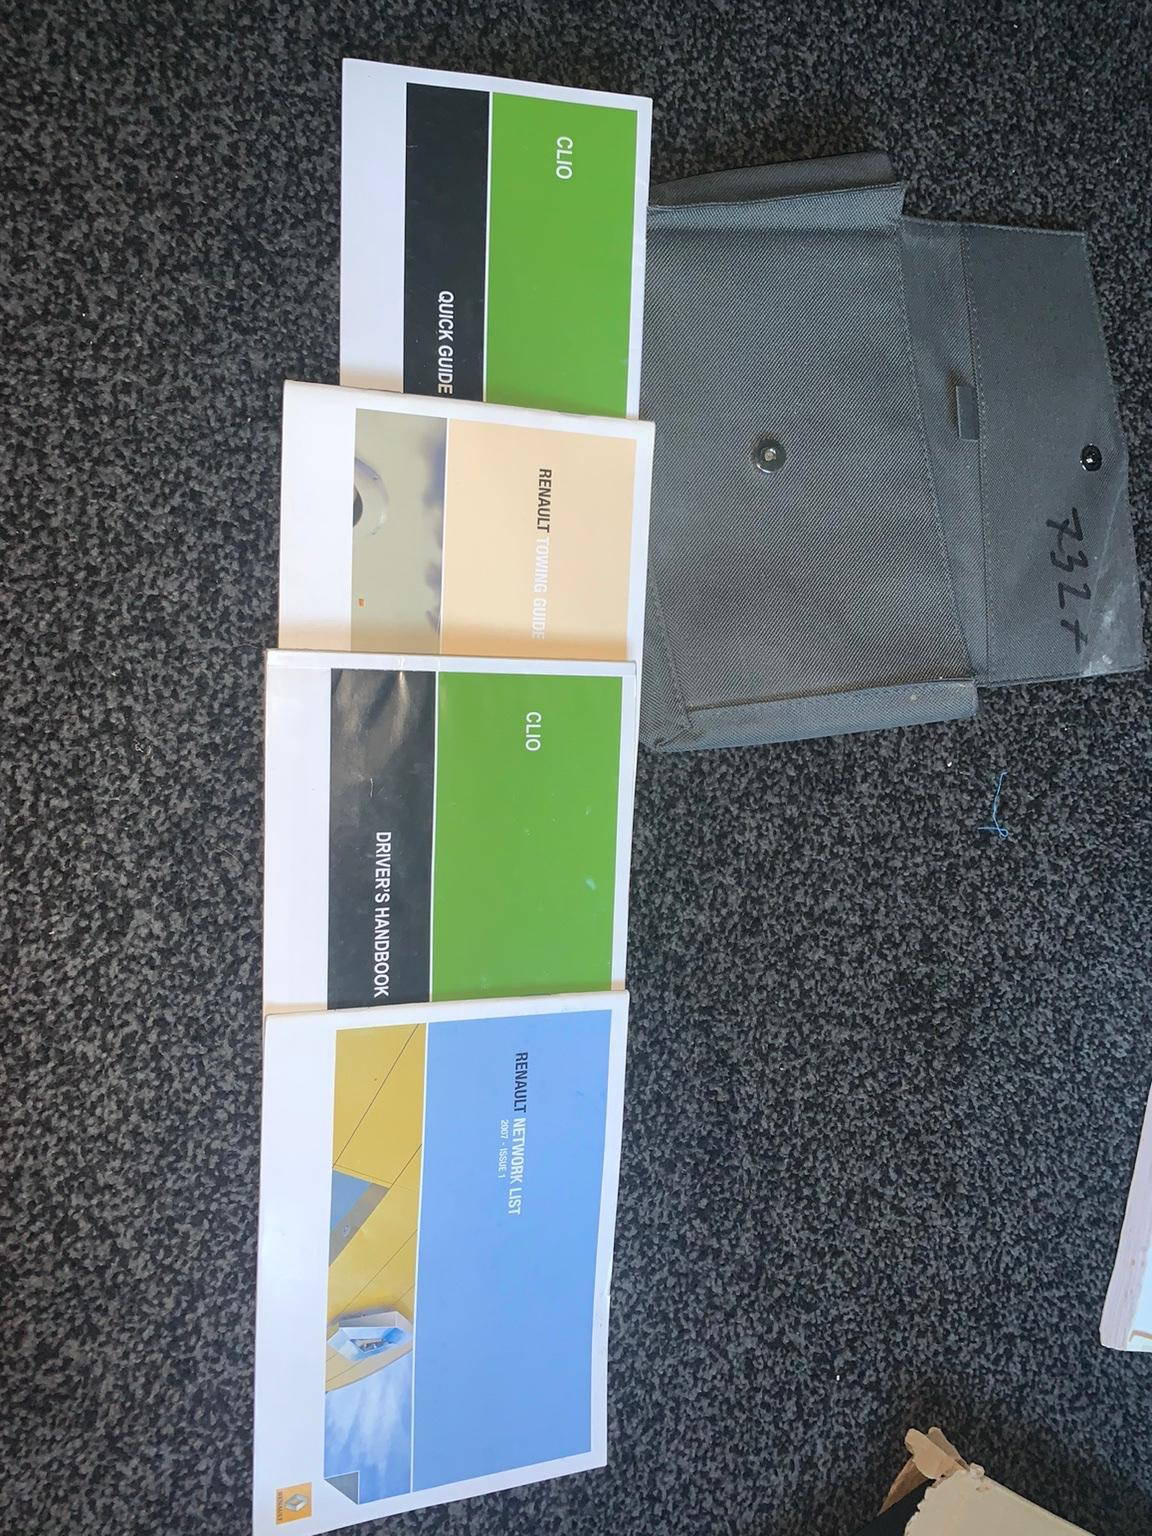 Renault Clio Handbook In Tn23 Ashford For 15 00 For Sale Shpock